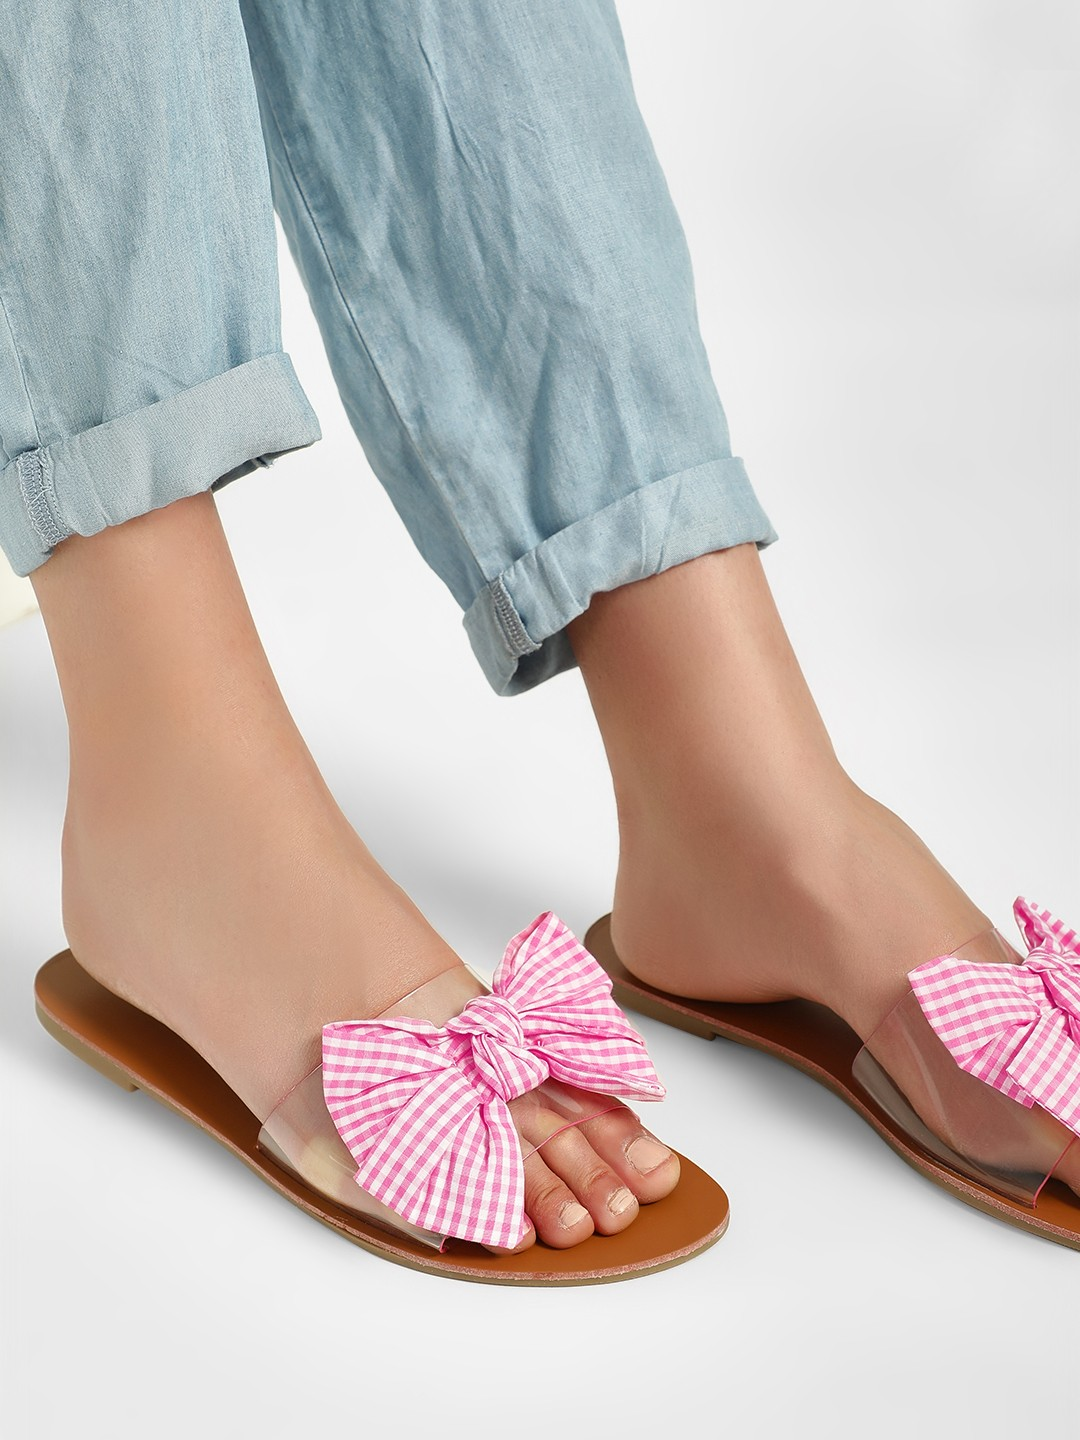 My Foot Couture Pink Gingham Check Bow Clear Slides 1